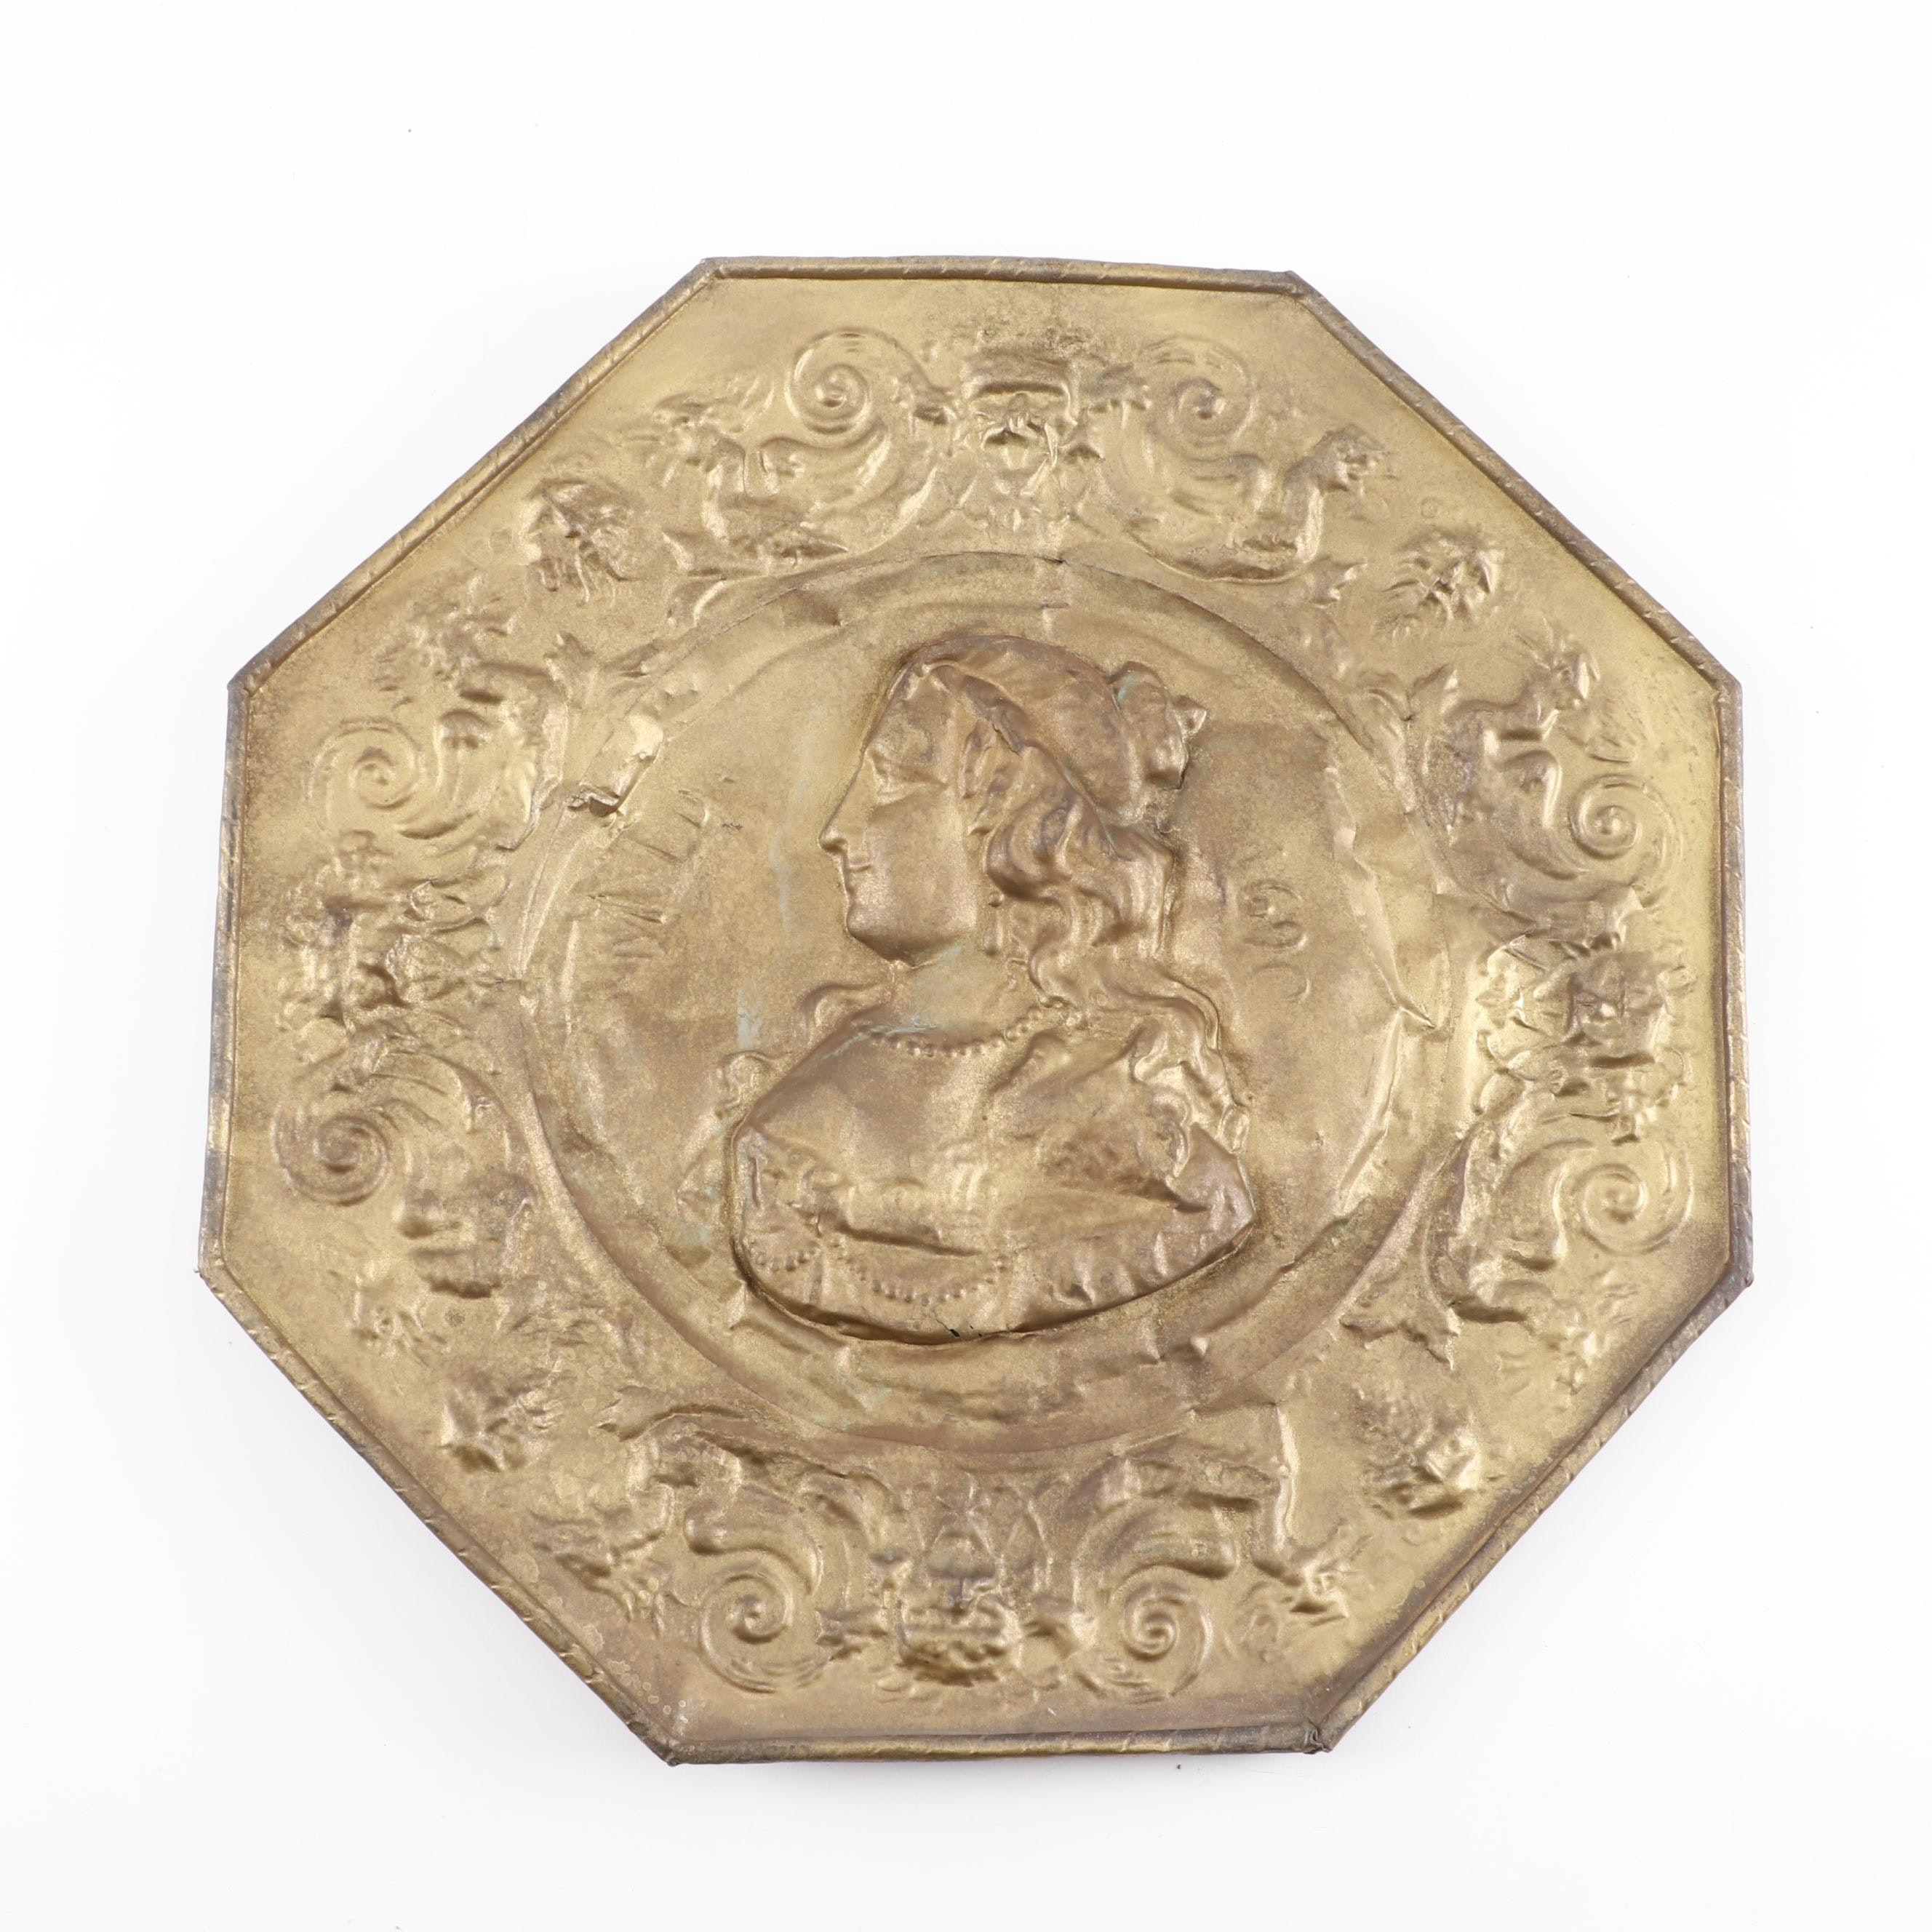 Wall Hanging of Replicated 1690 Coin